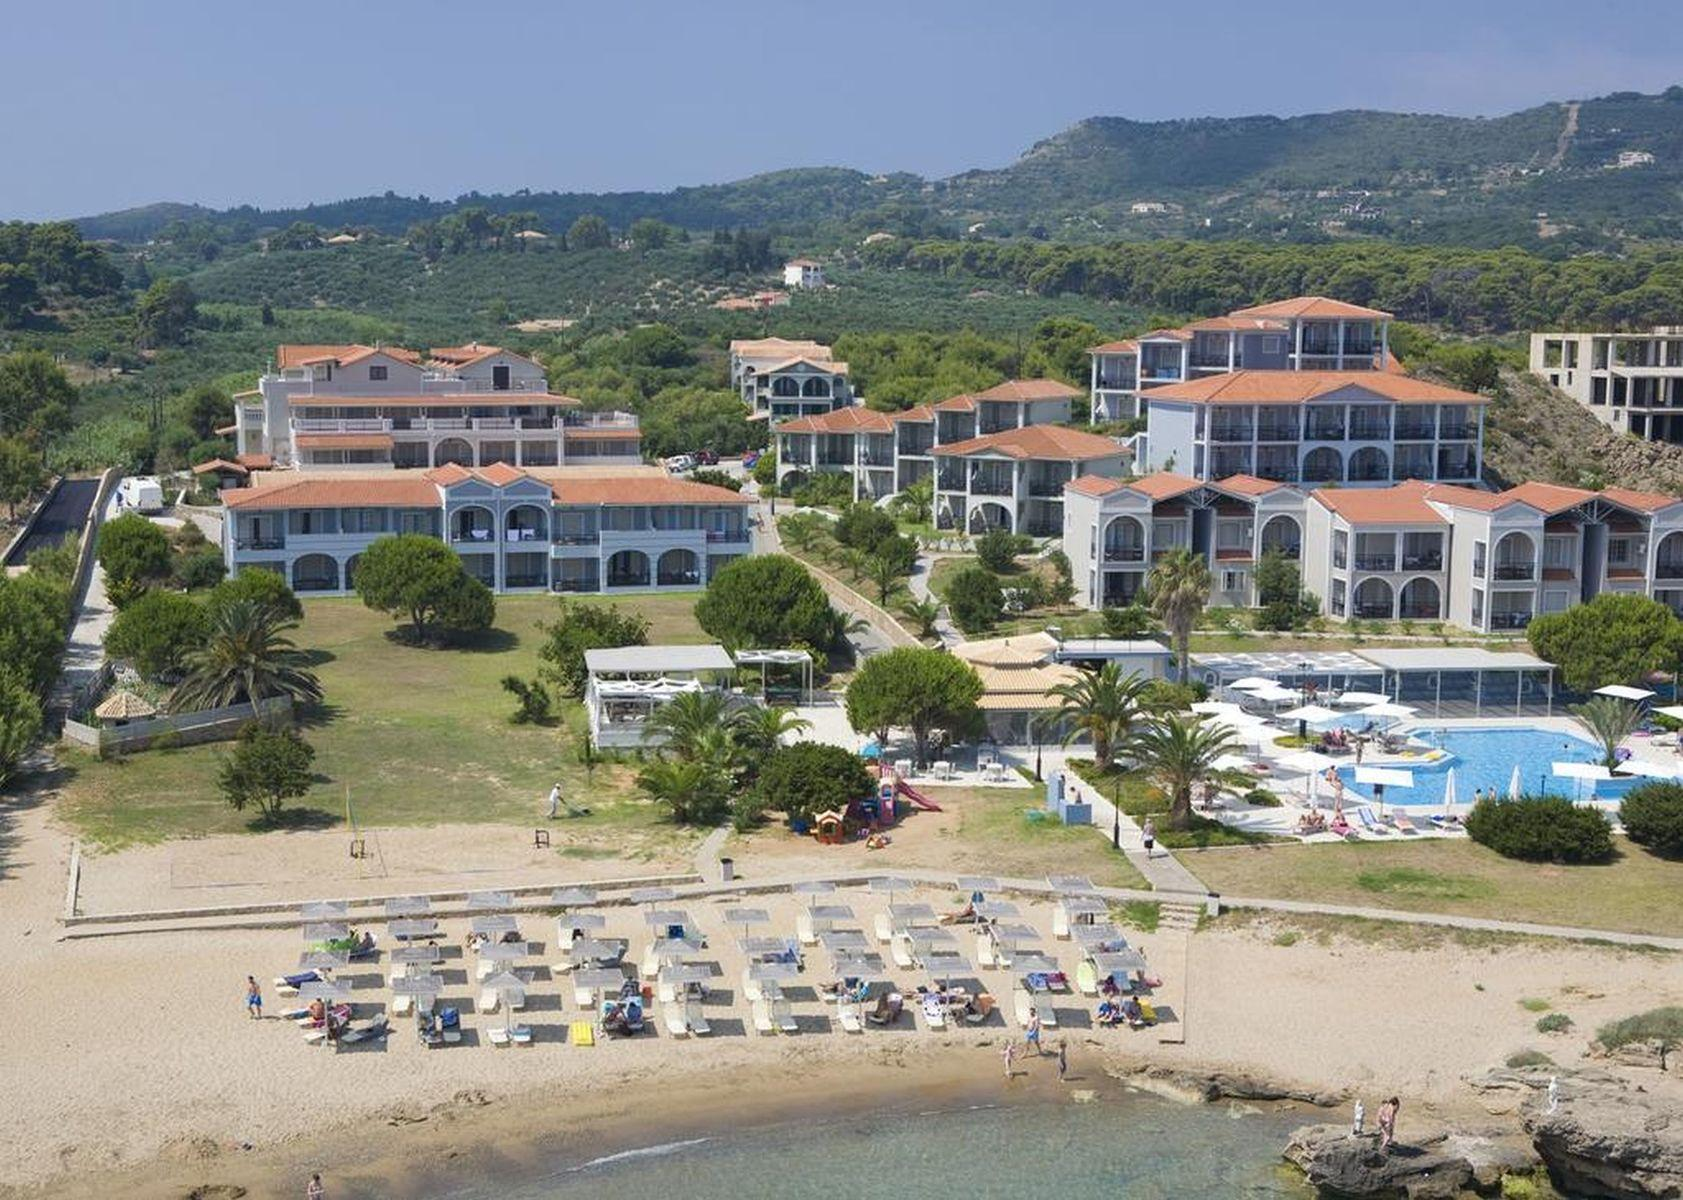 The Bay Hotel and Suites in Vassilikos, Zante, Greek Islands